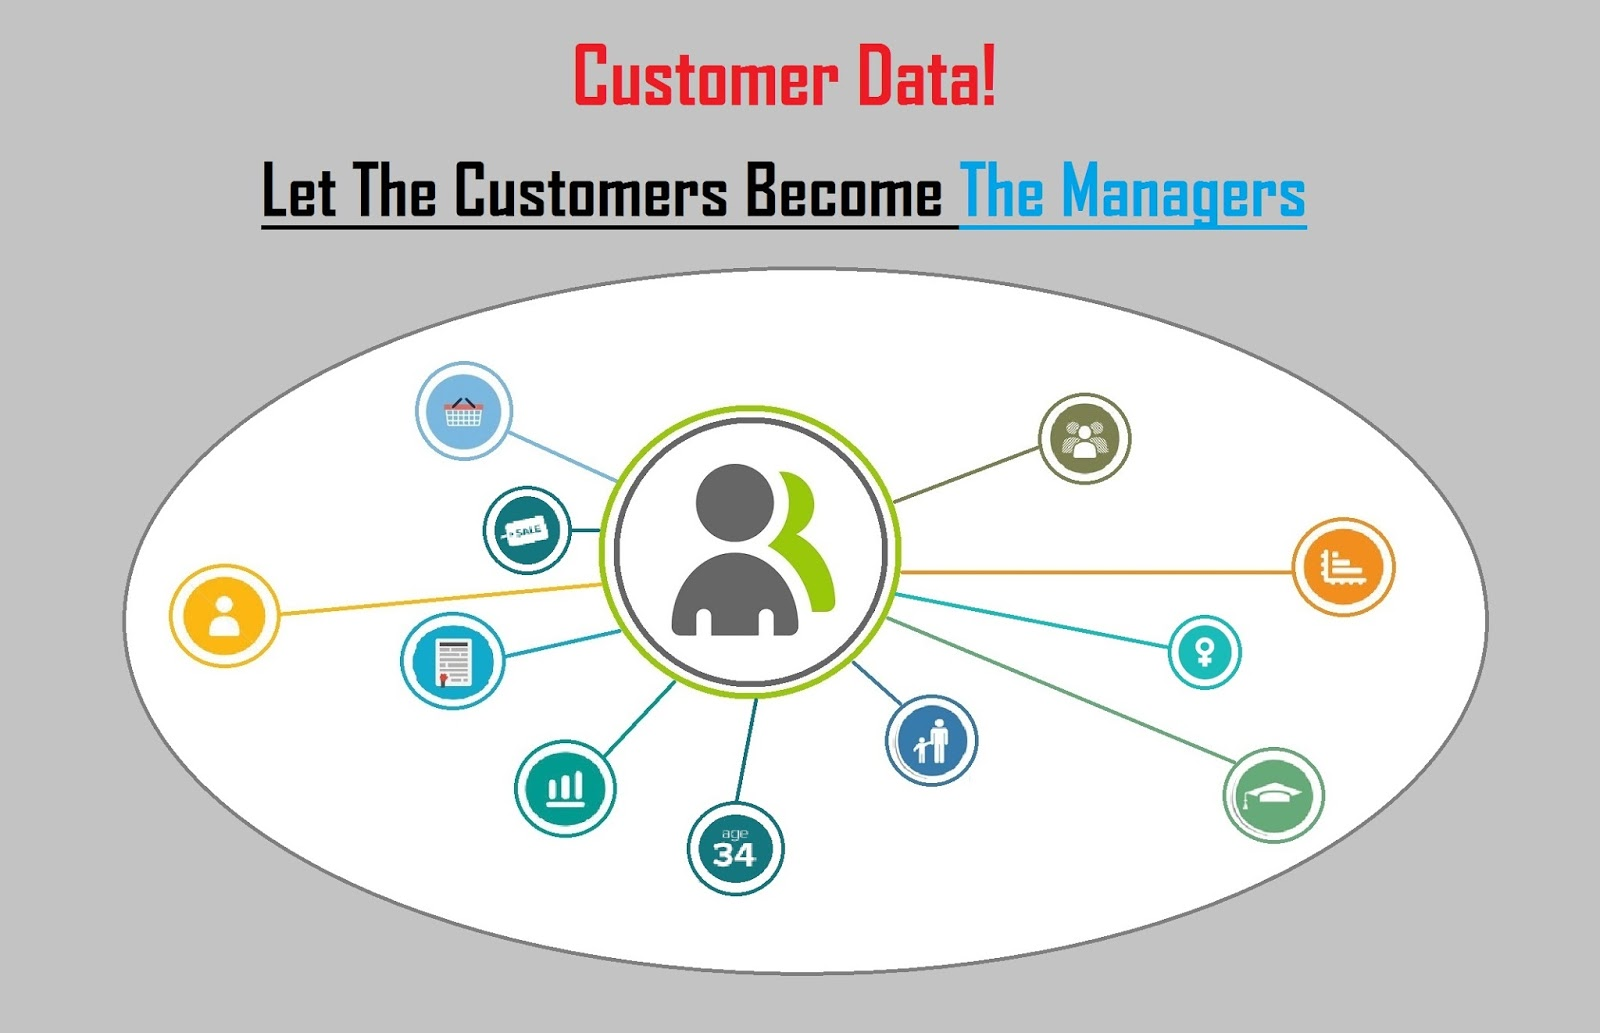 customer data and managers